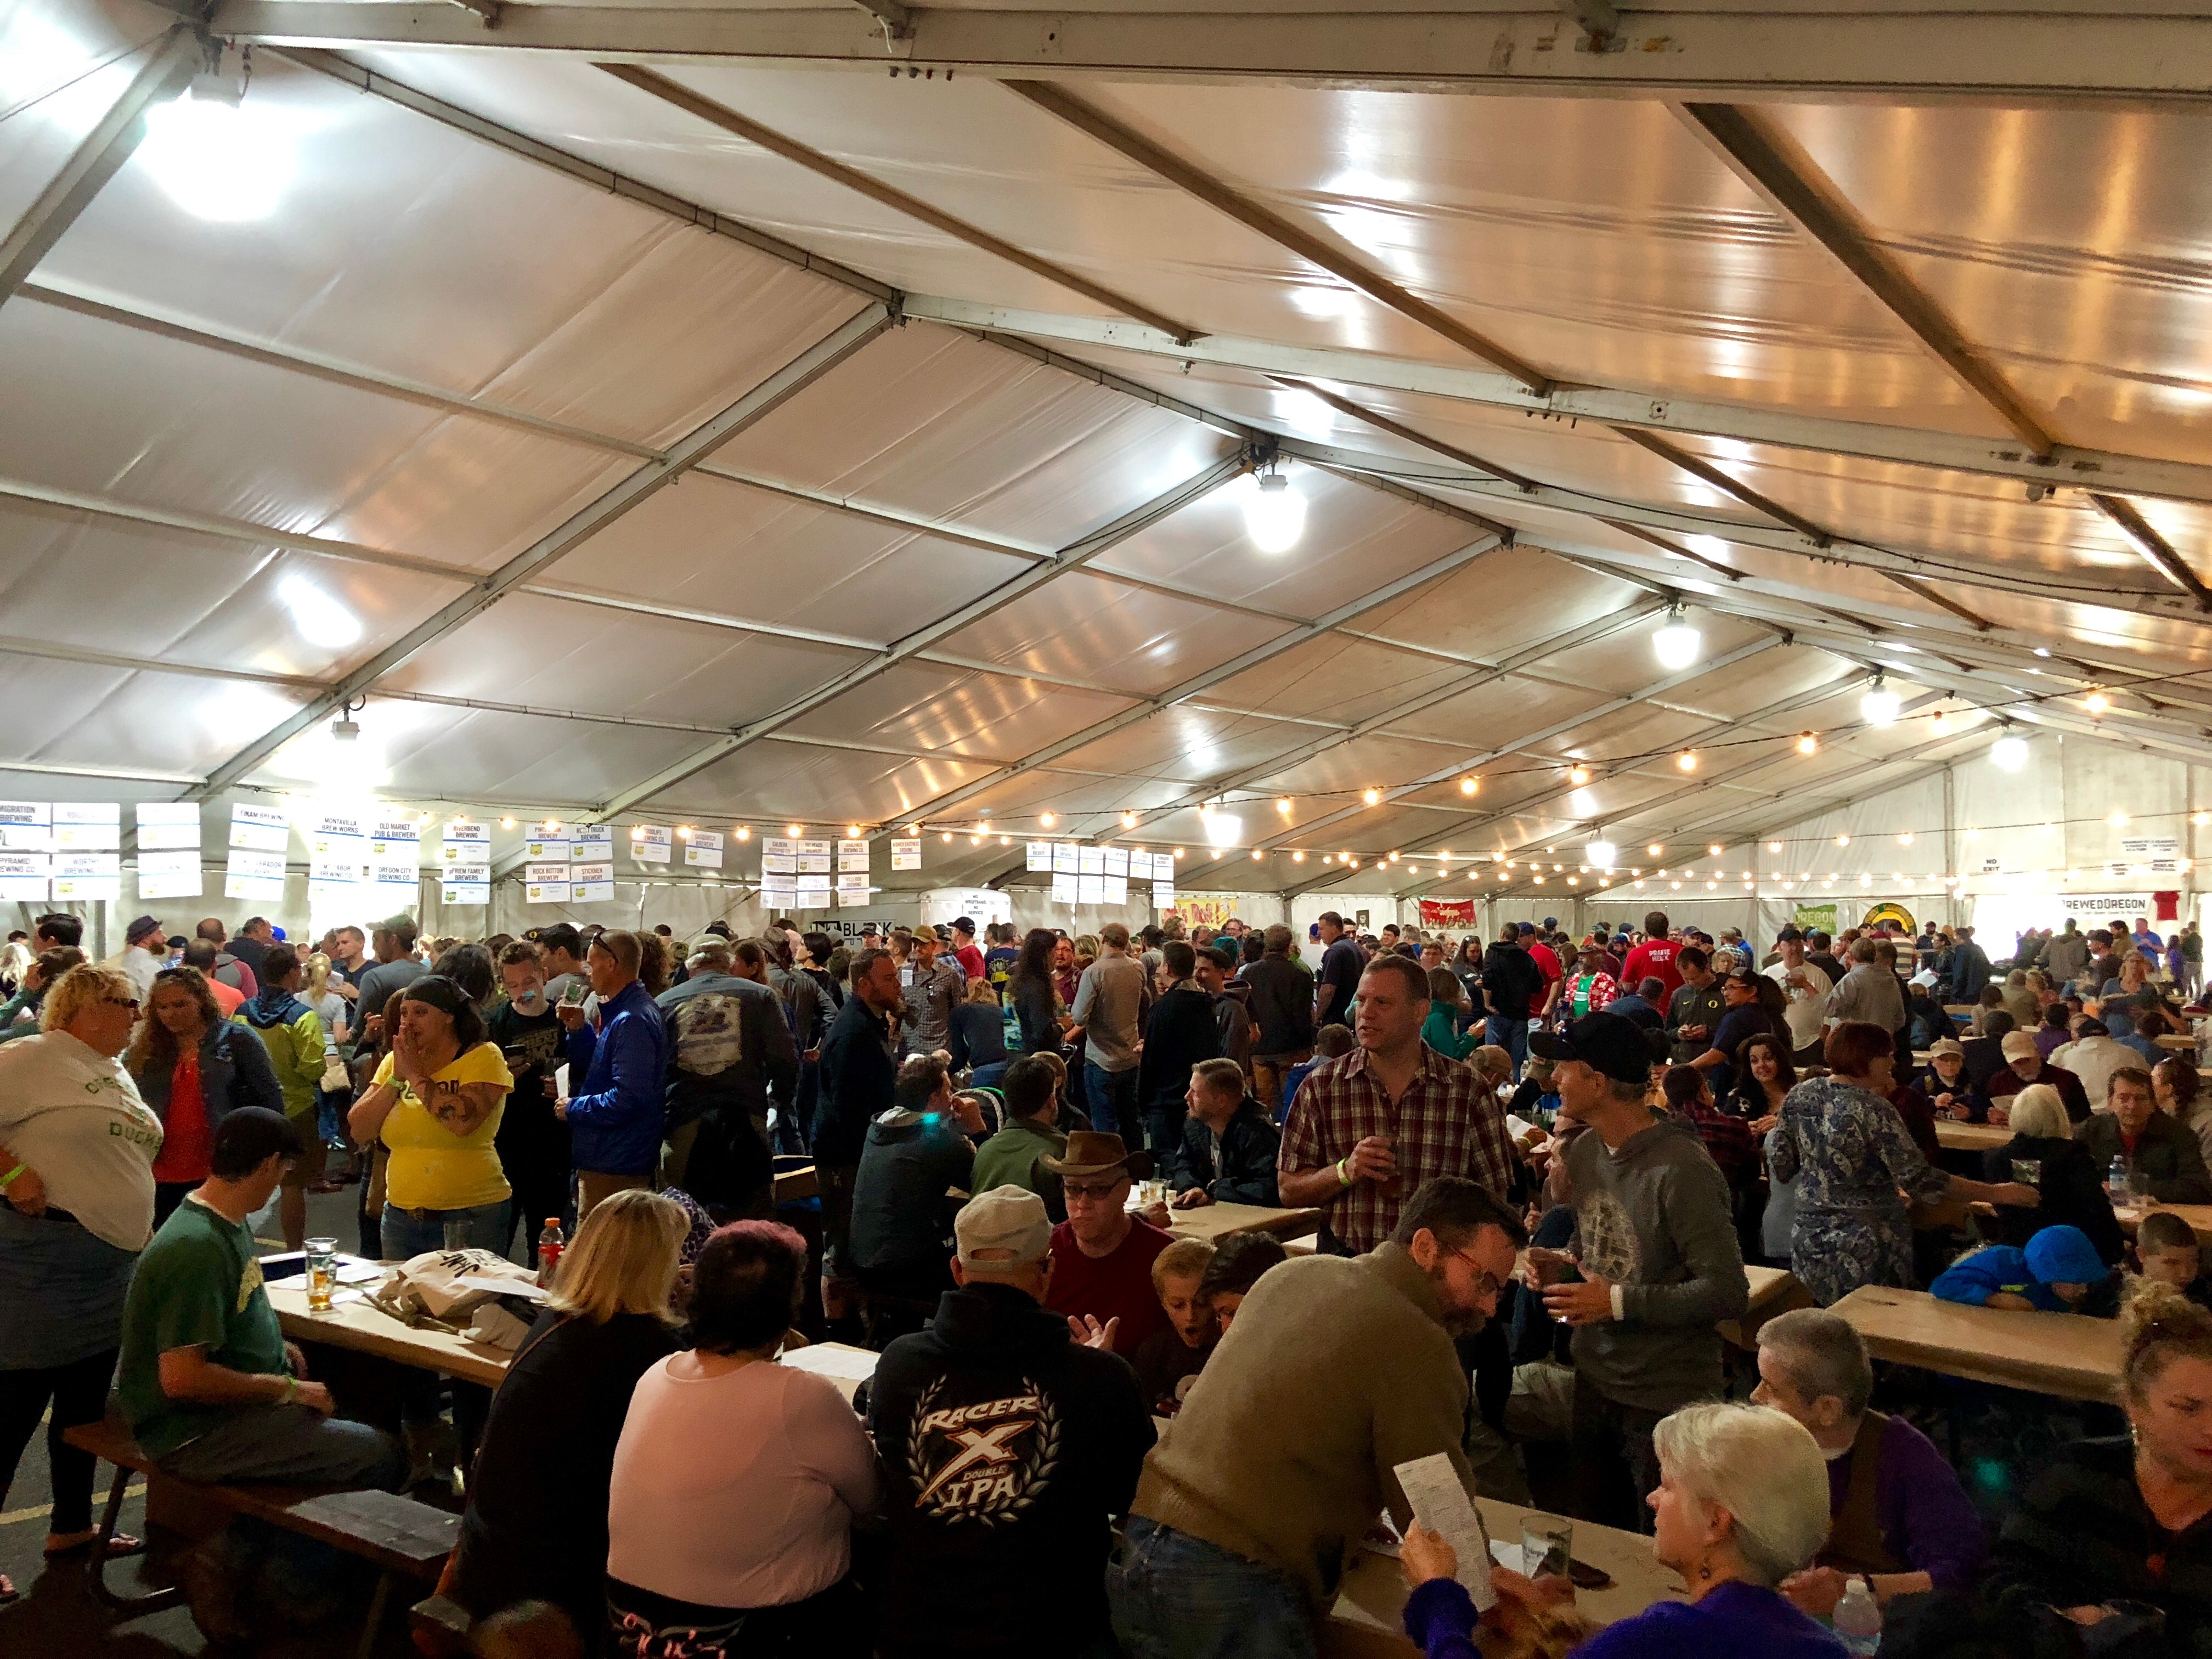 The festive crowd under the big tent at the Portland Fresh Hop Festival.